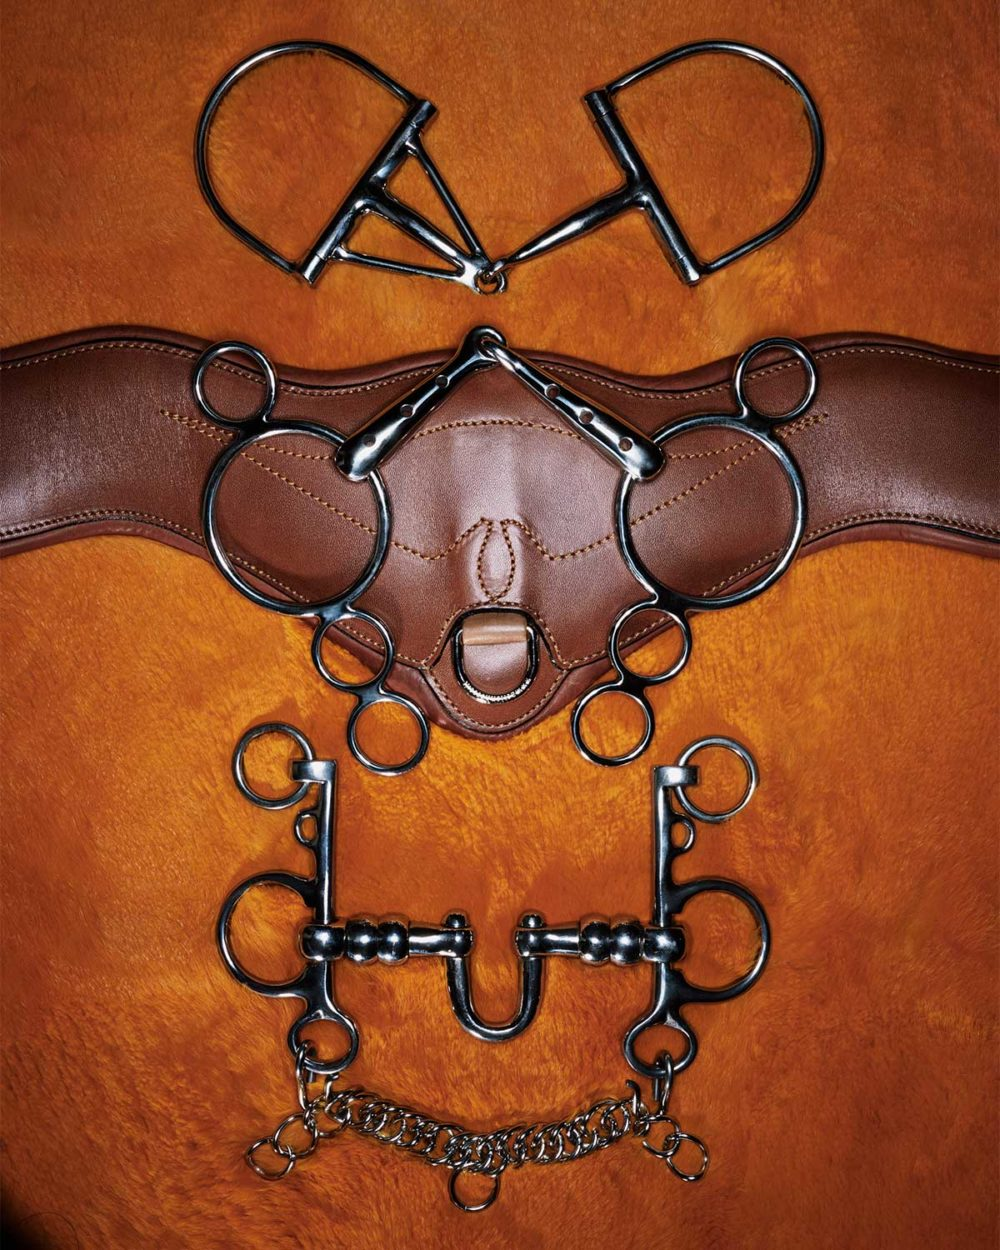 Monica Stevenson Equestrian Photography - Bits and Pieces – Orange Bits